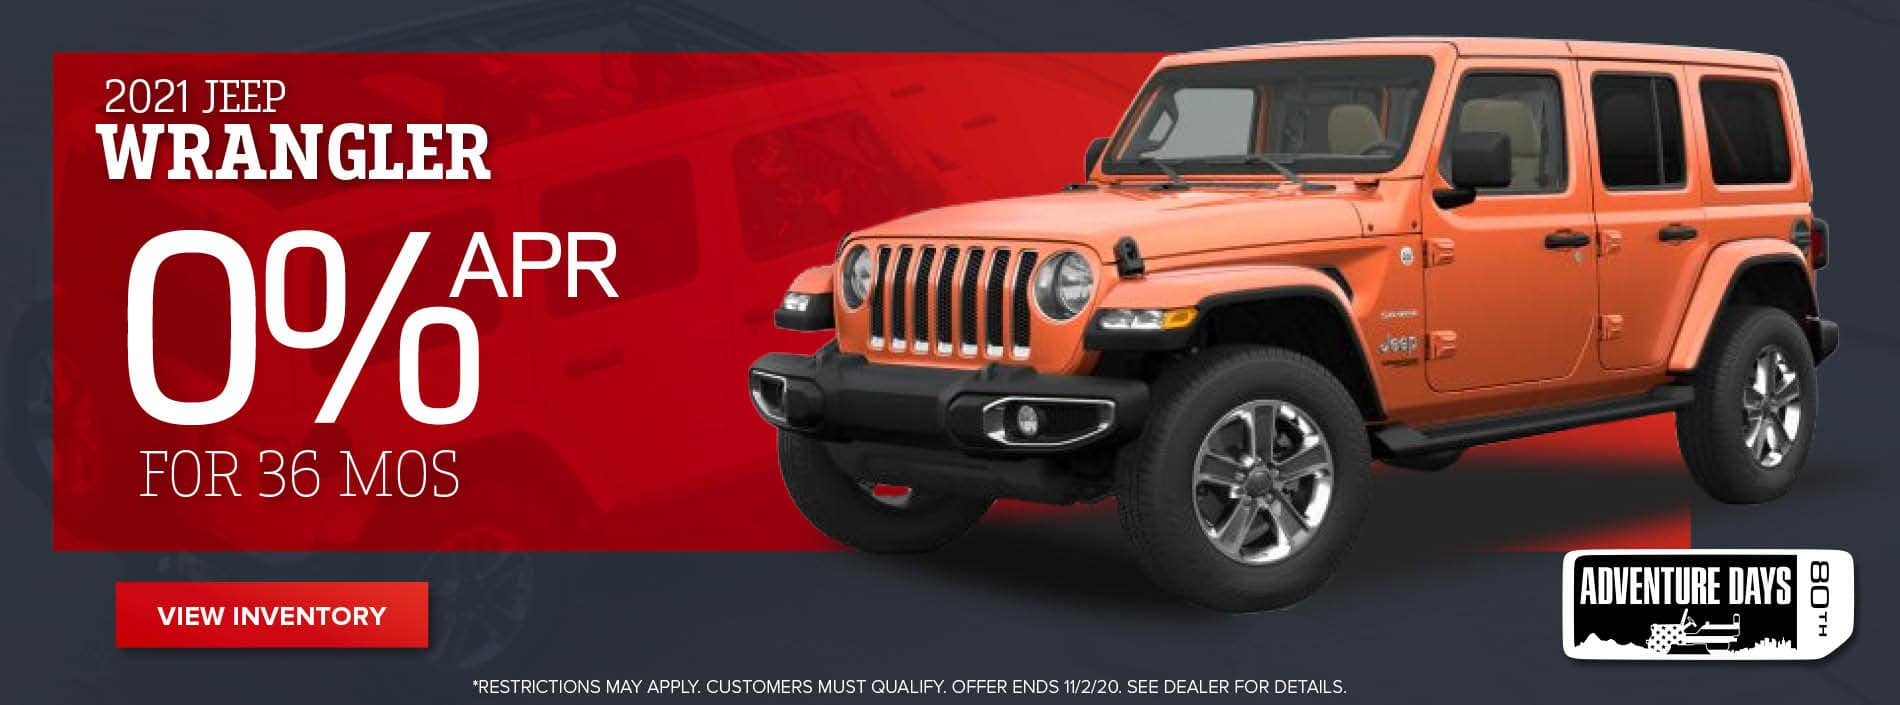 CLASSIC CDJR OCT HOMEPAGE BANNERS 10092011